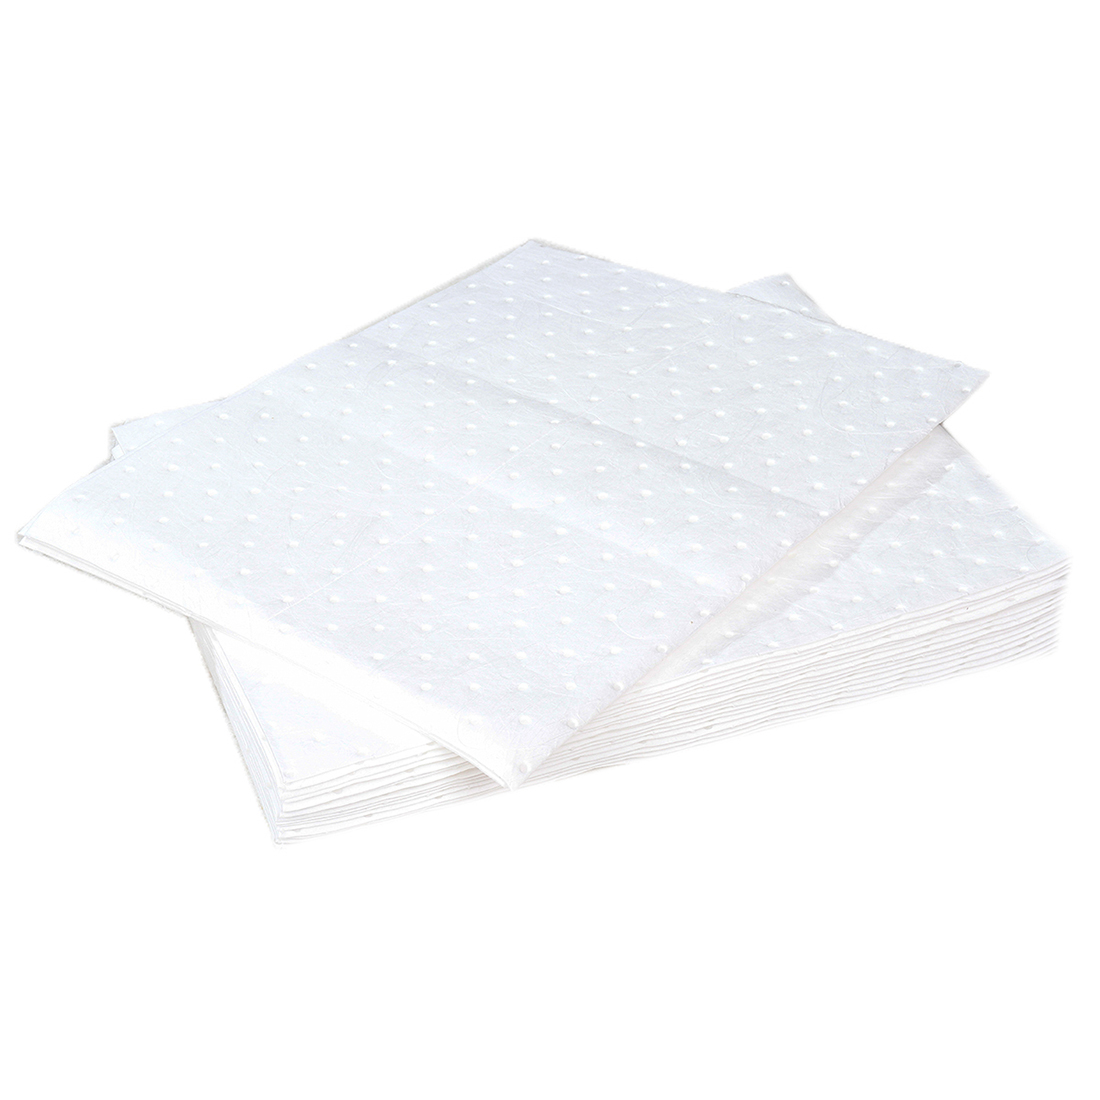 RS PRO Oil Spill Absorbent Pad 18 L Capacity, 20 Per Package - 20 Pack